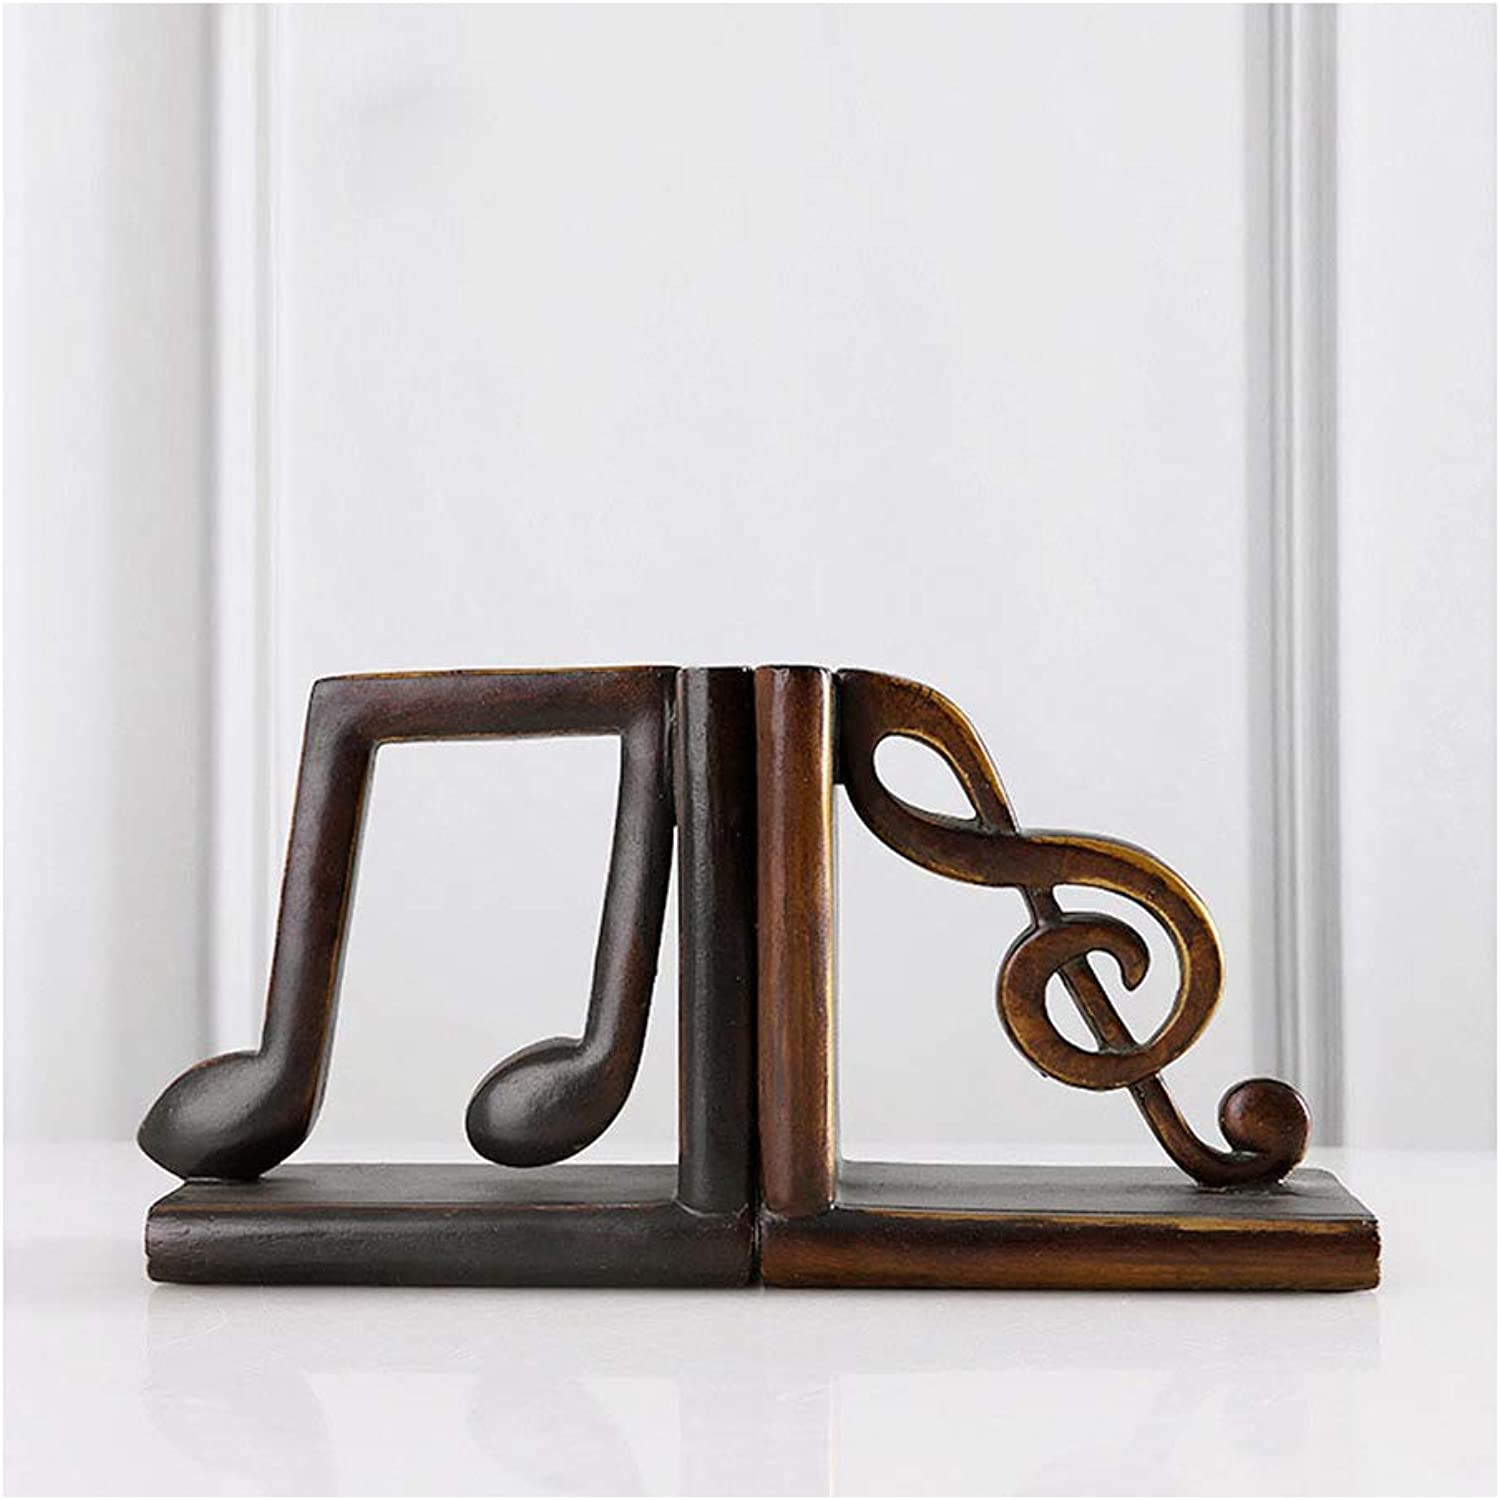 Book Stand,Synthetic Resin Bookend Shelf Bookend Holder Office Supplies Home Decoration Book Stand,A